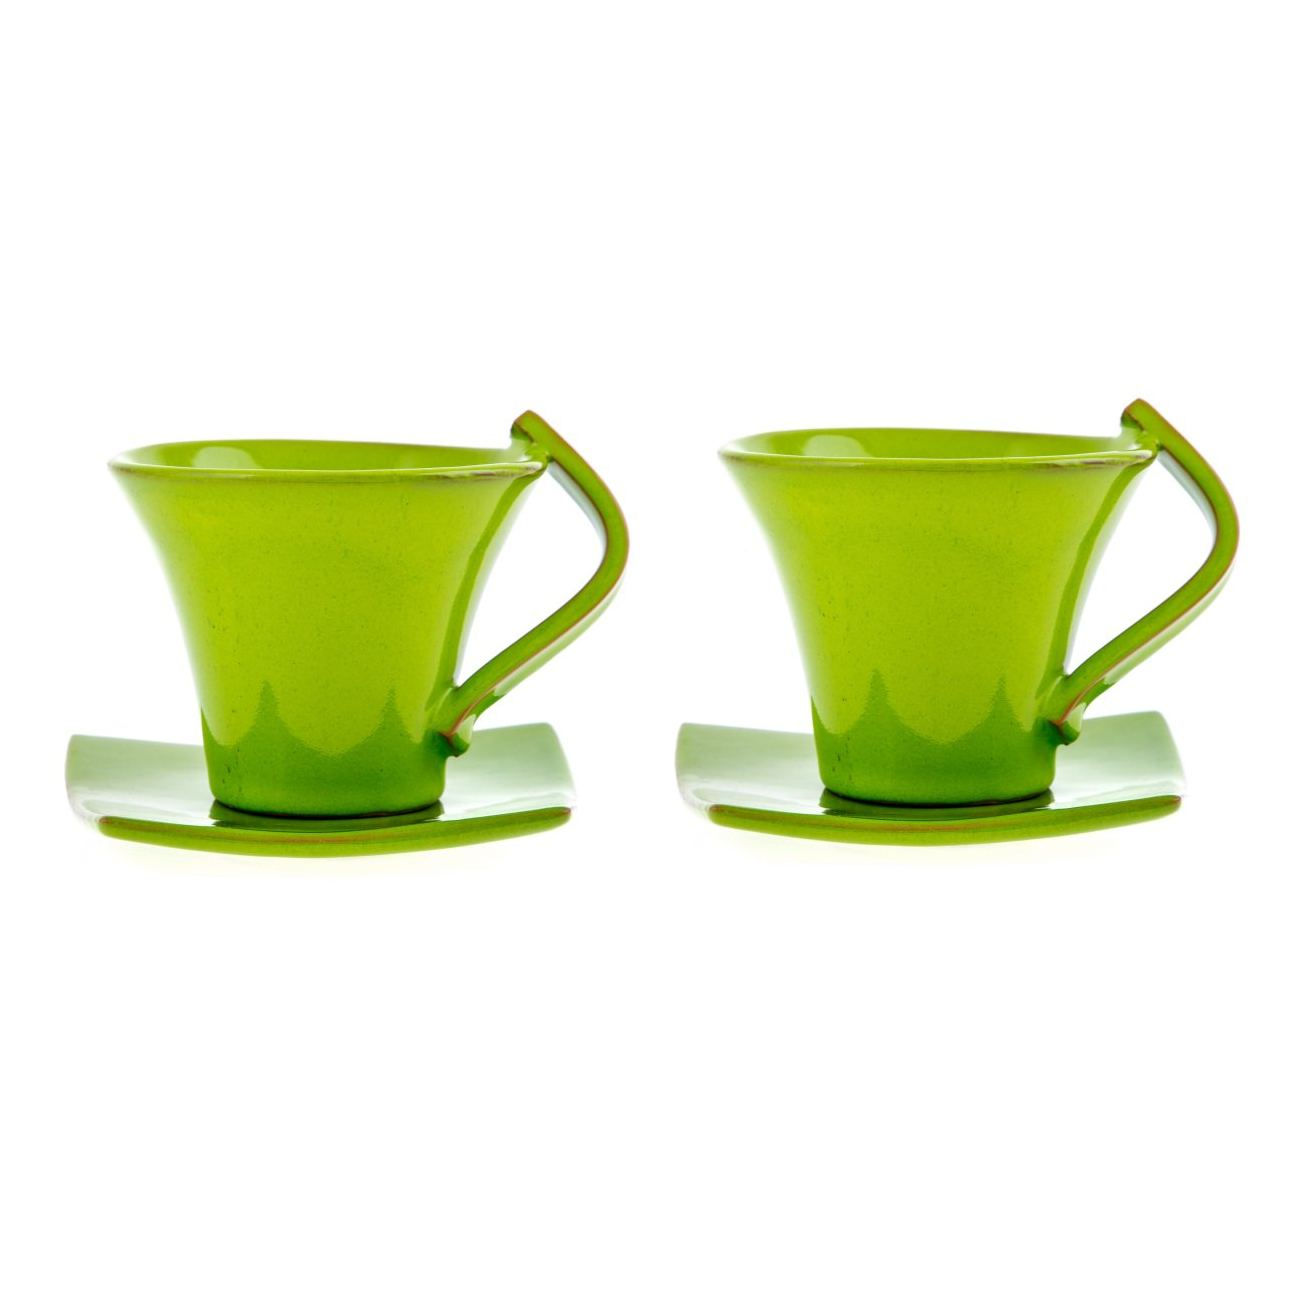 Small Coffee Cups And Saucers Mug Or Cup Saucer Set Of 2 Modern Handmade Ceramic Green 4 7 12cm Small